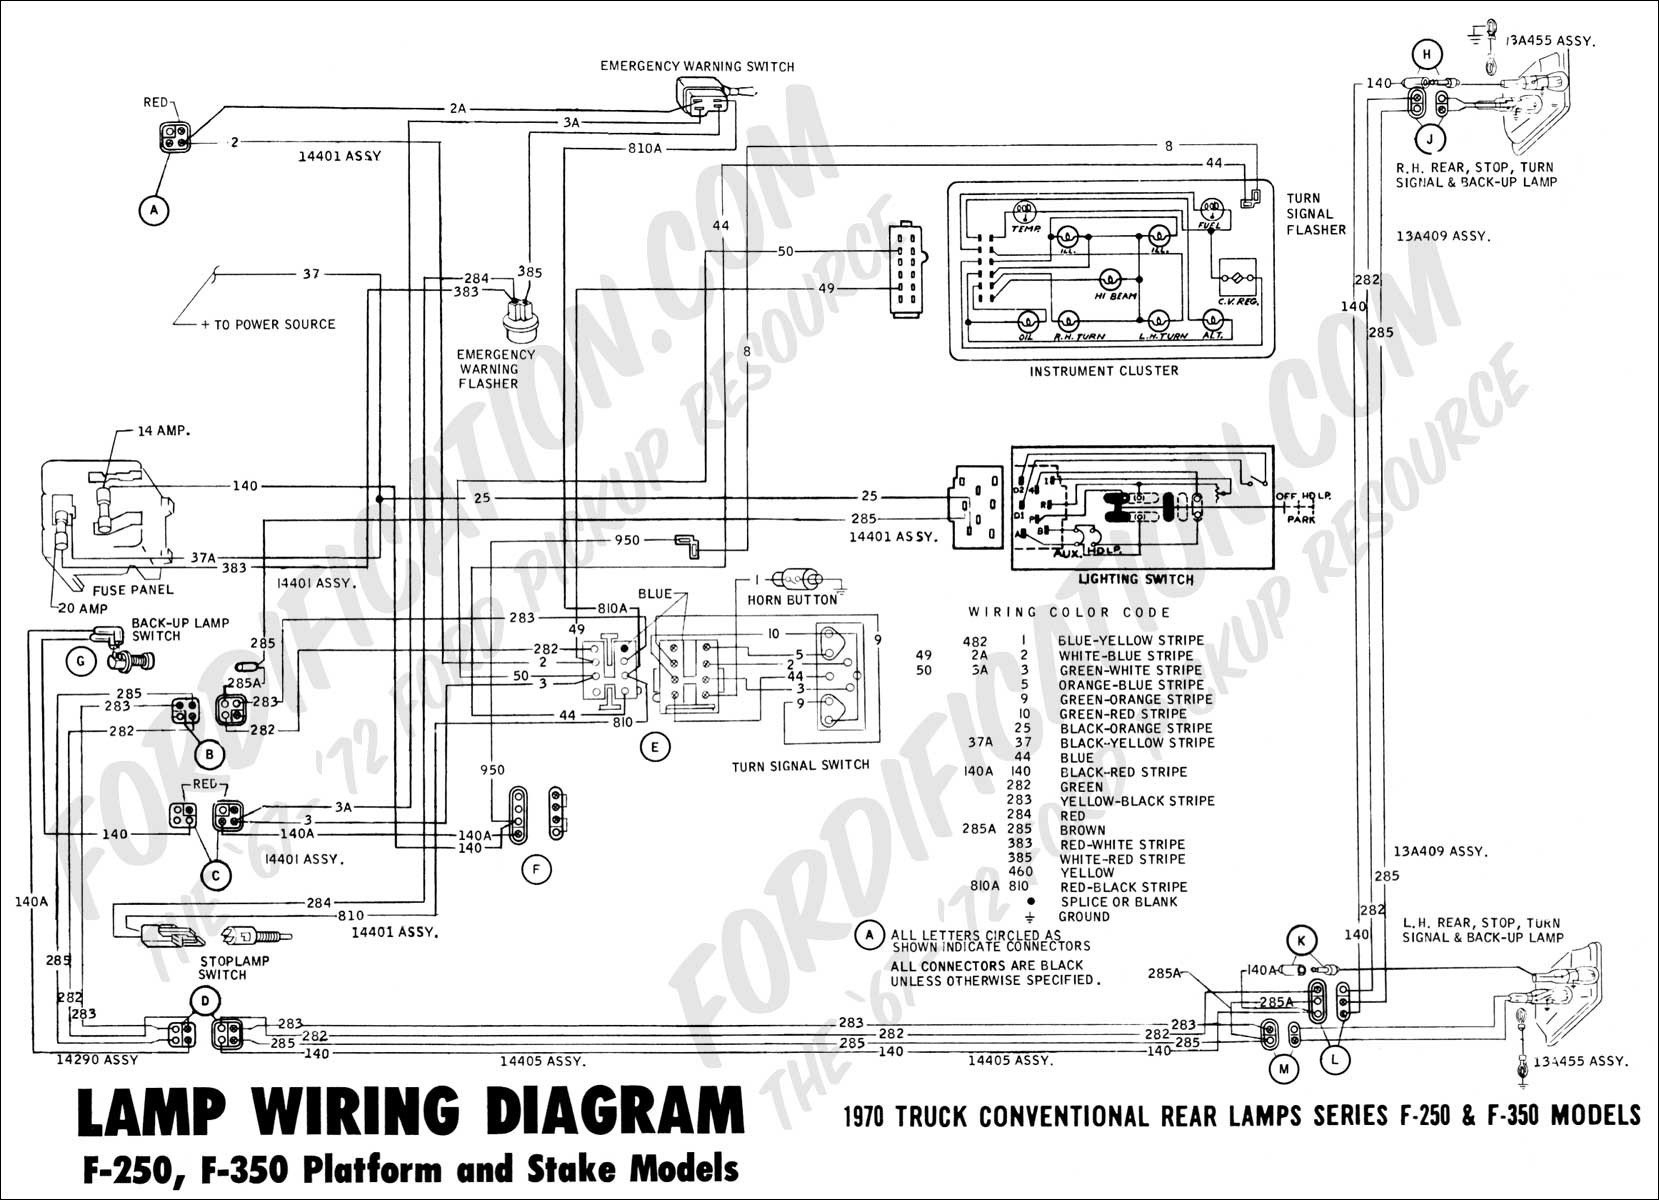 tail light wiring diagram ford f150 - brake light diagram new 2000 ford  f350 tail light